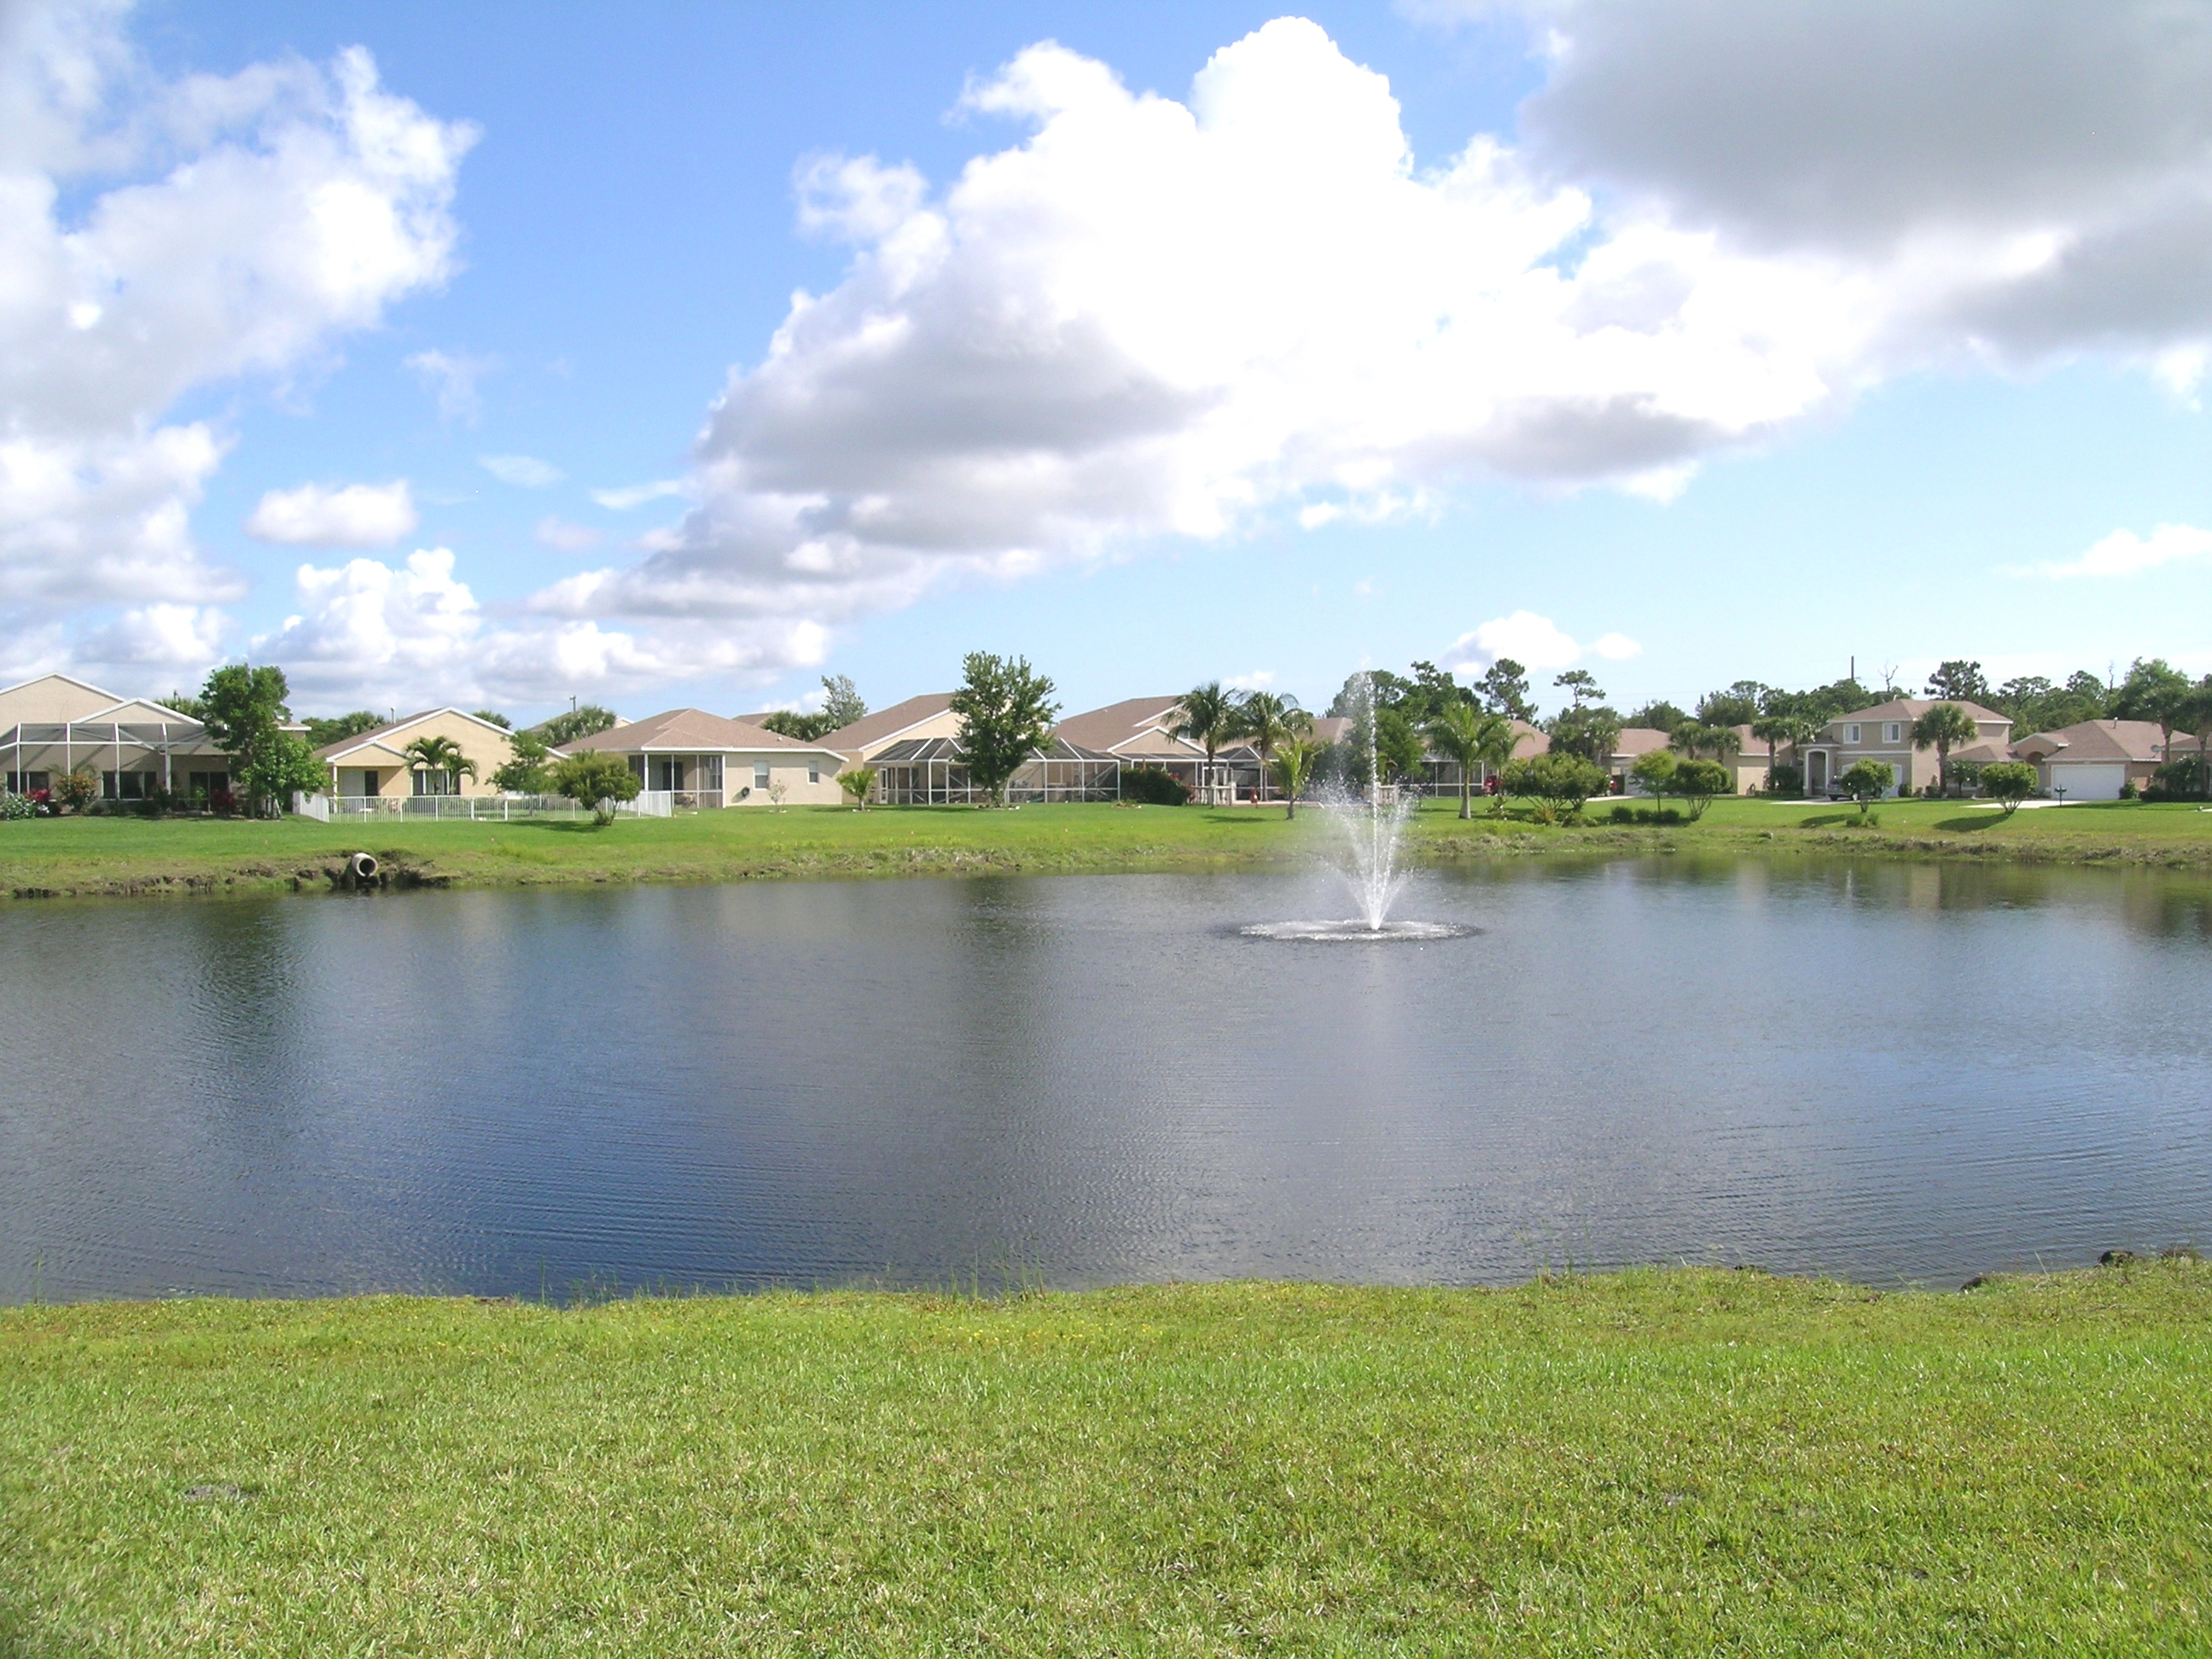 Springtree - Stuart Florida Homes for Sale